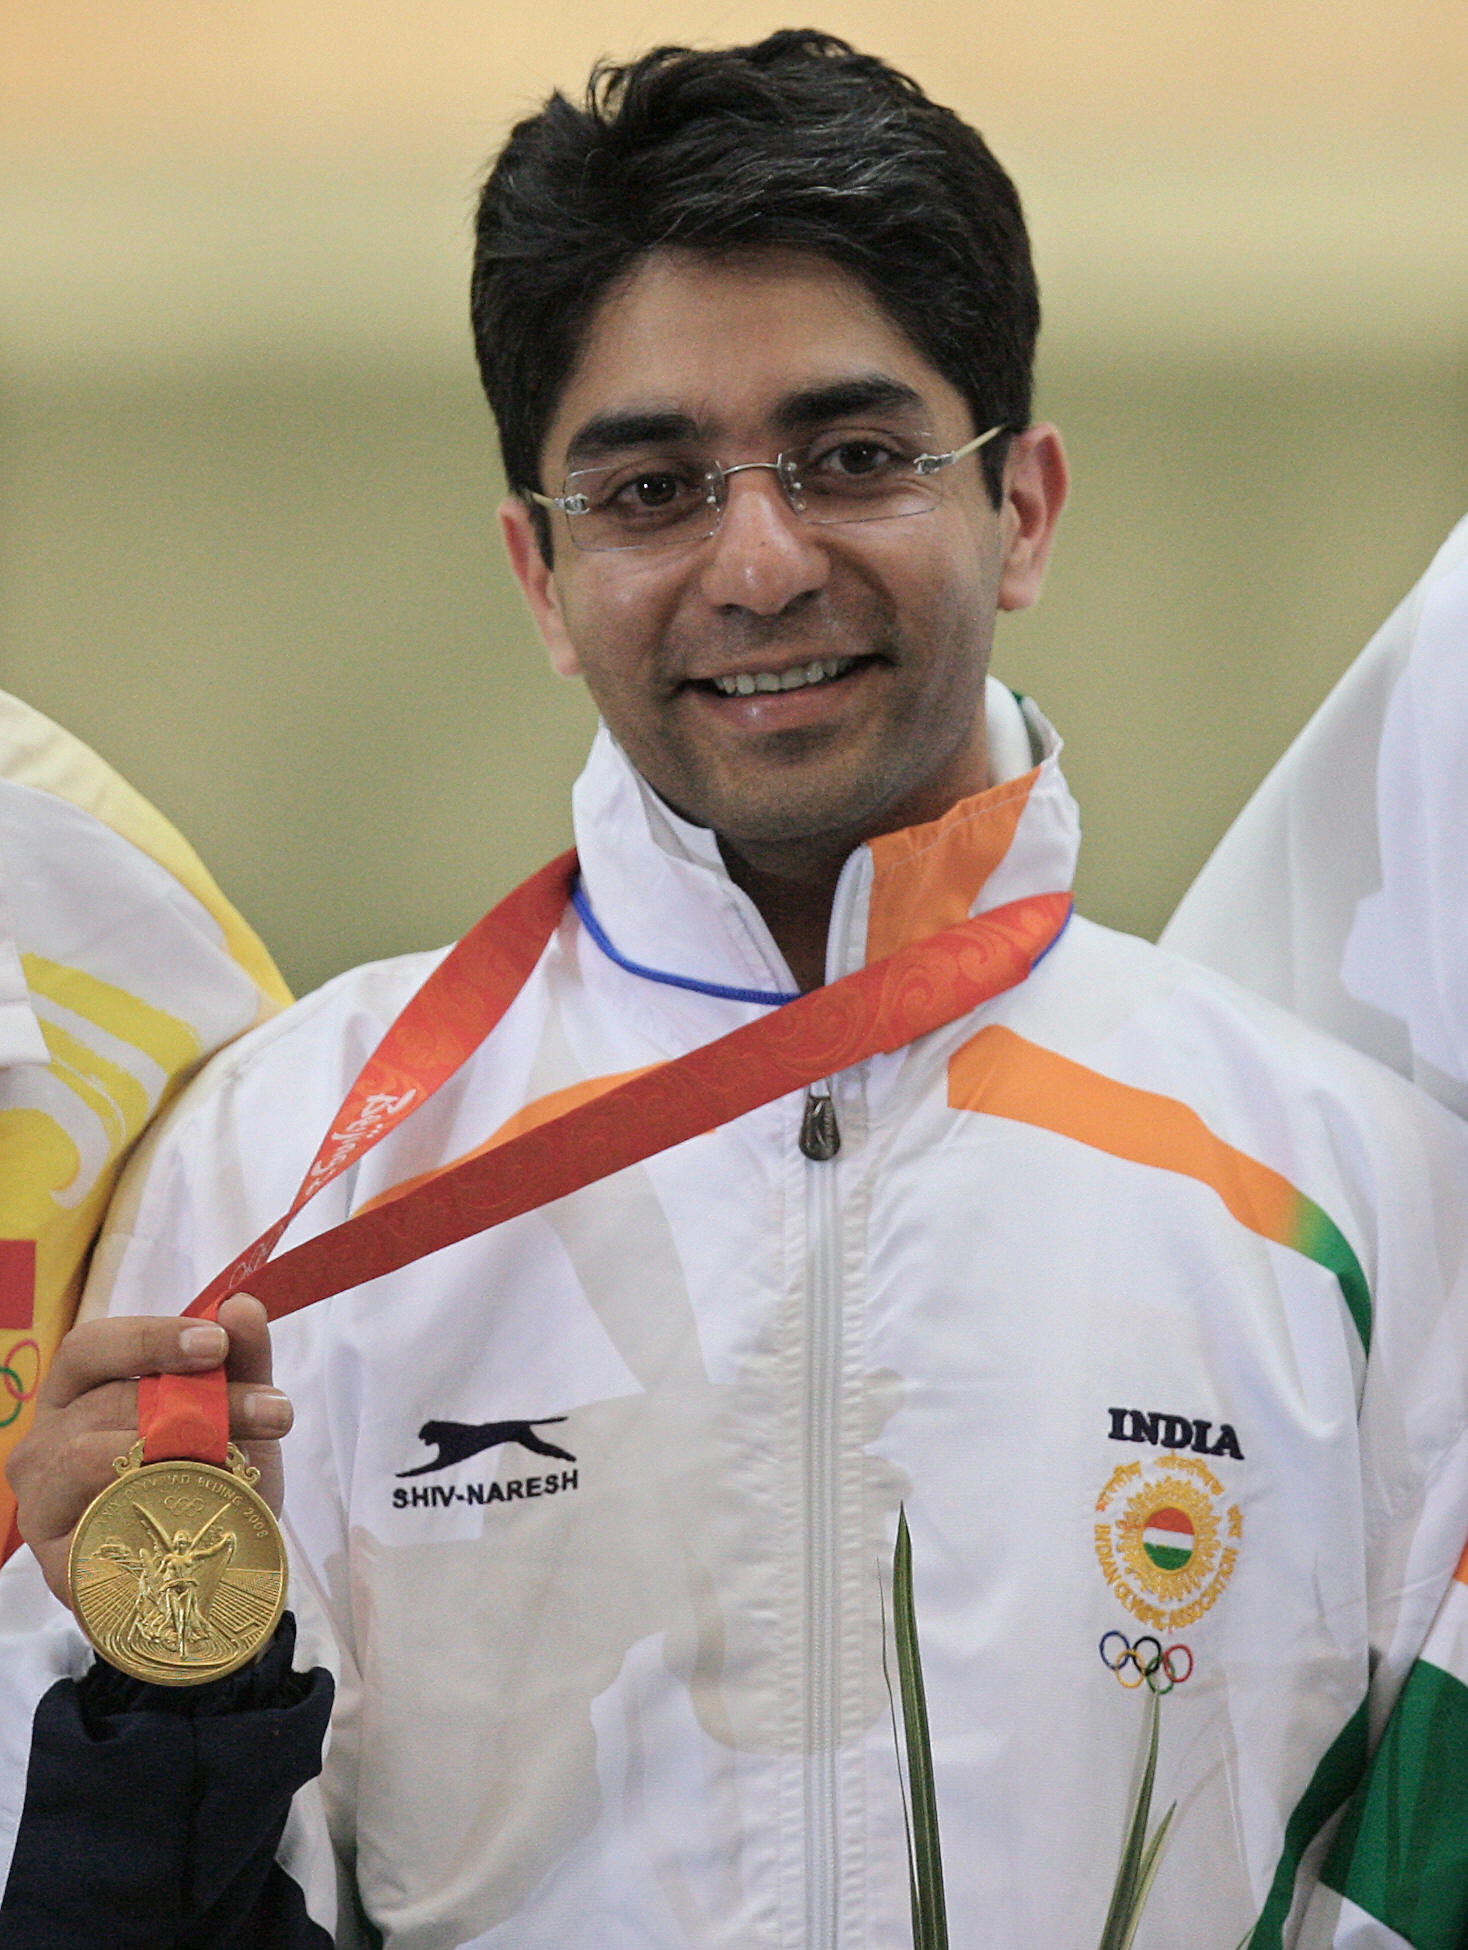 India's last Olympic gold medal came at Beijing 2008 thanks to shooter Abhinav Bindra ©Getty Images